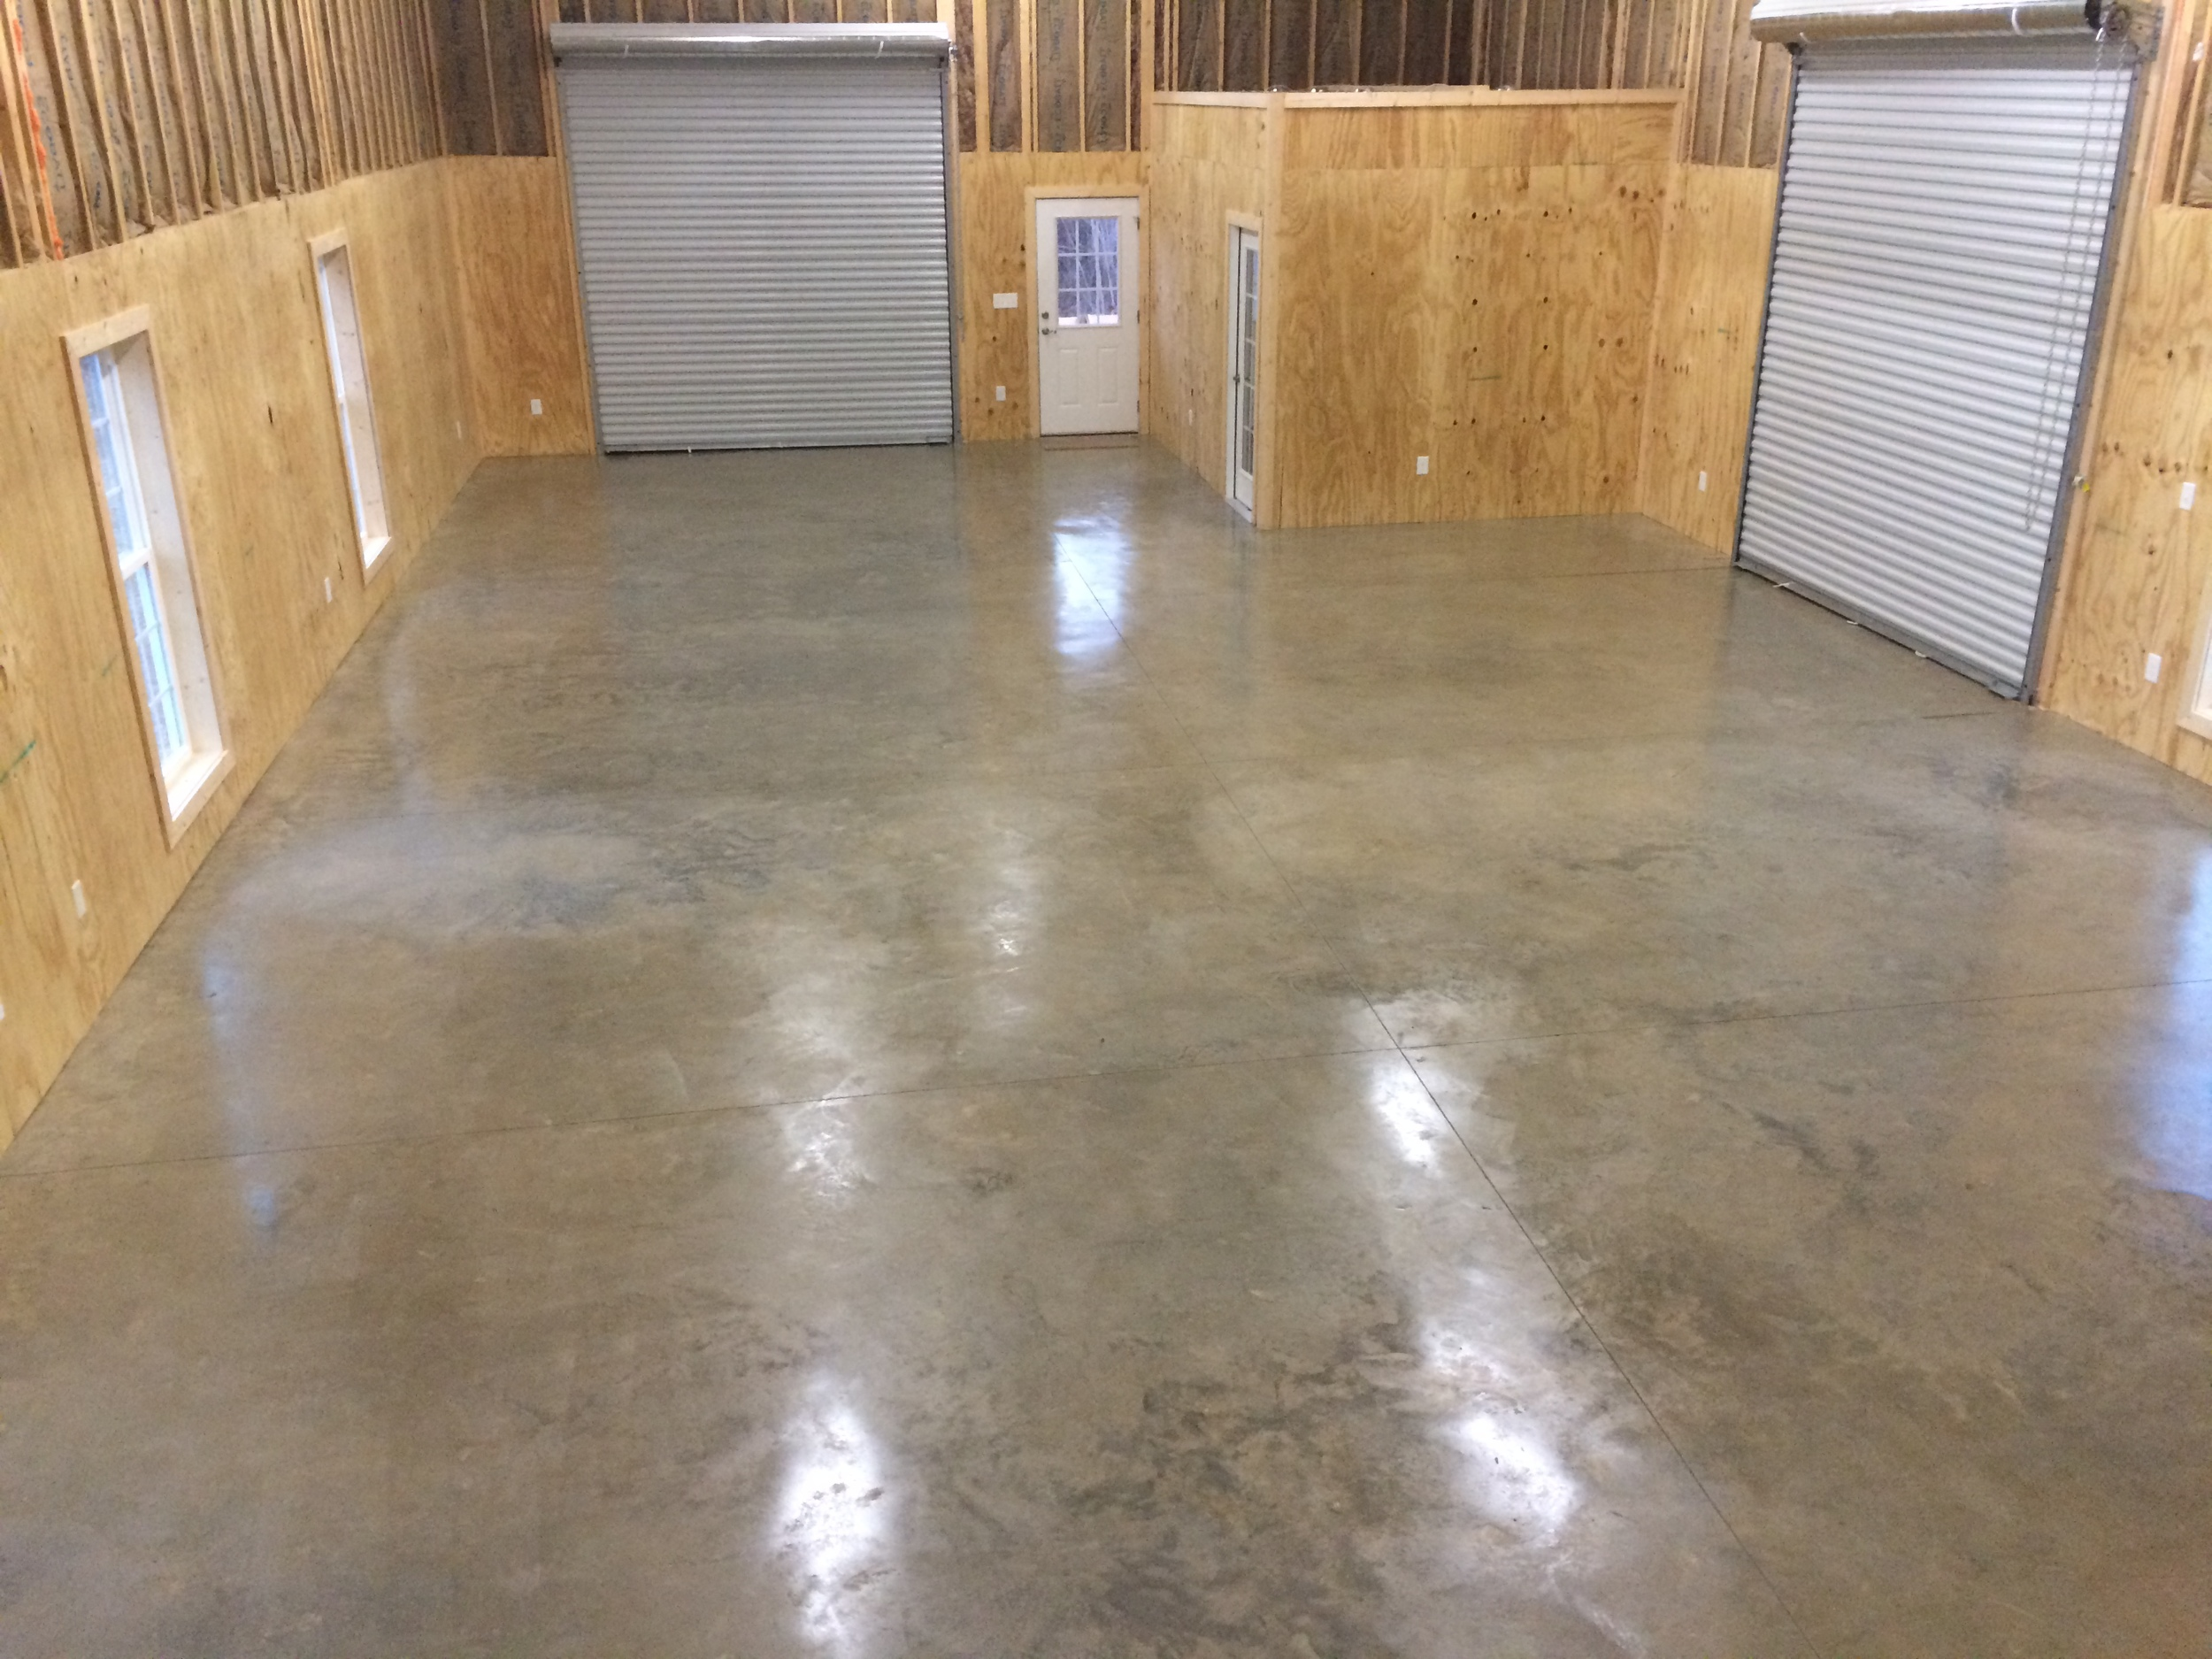 Need a place to restore a vintage automobile? Maybe create some Pintrest worthy projects? This new garage/workshop is the perfect space.